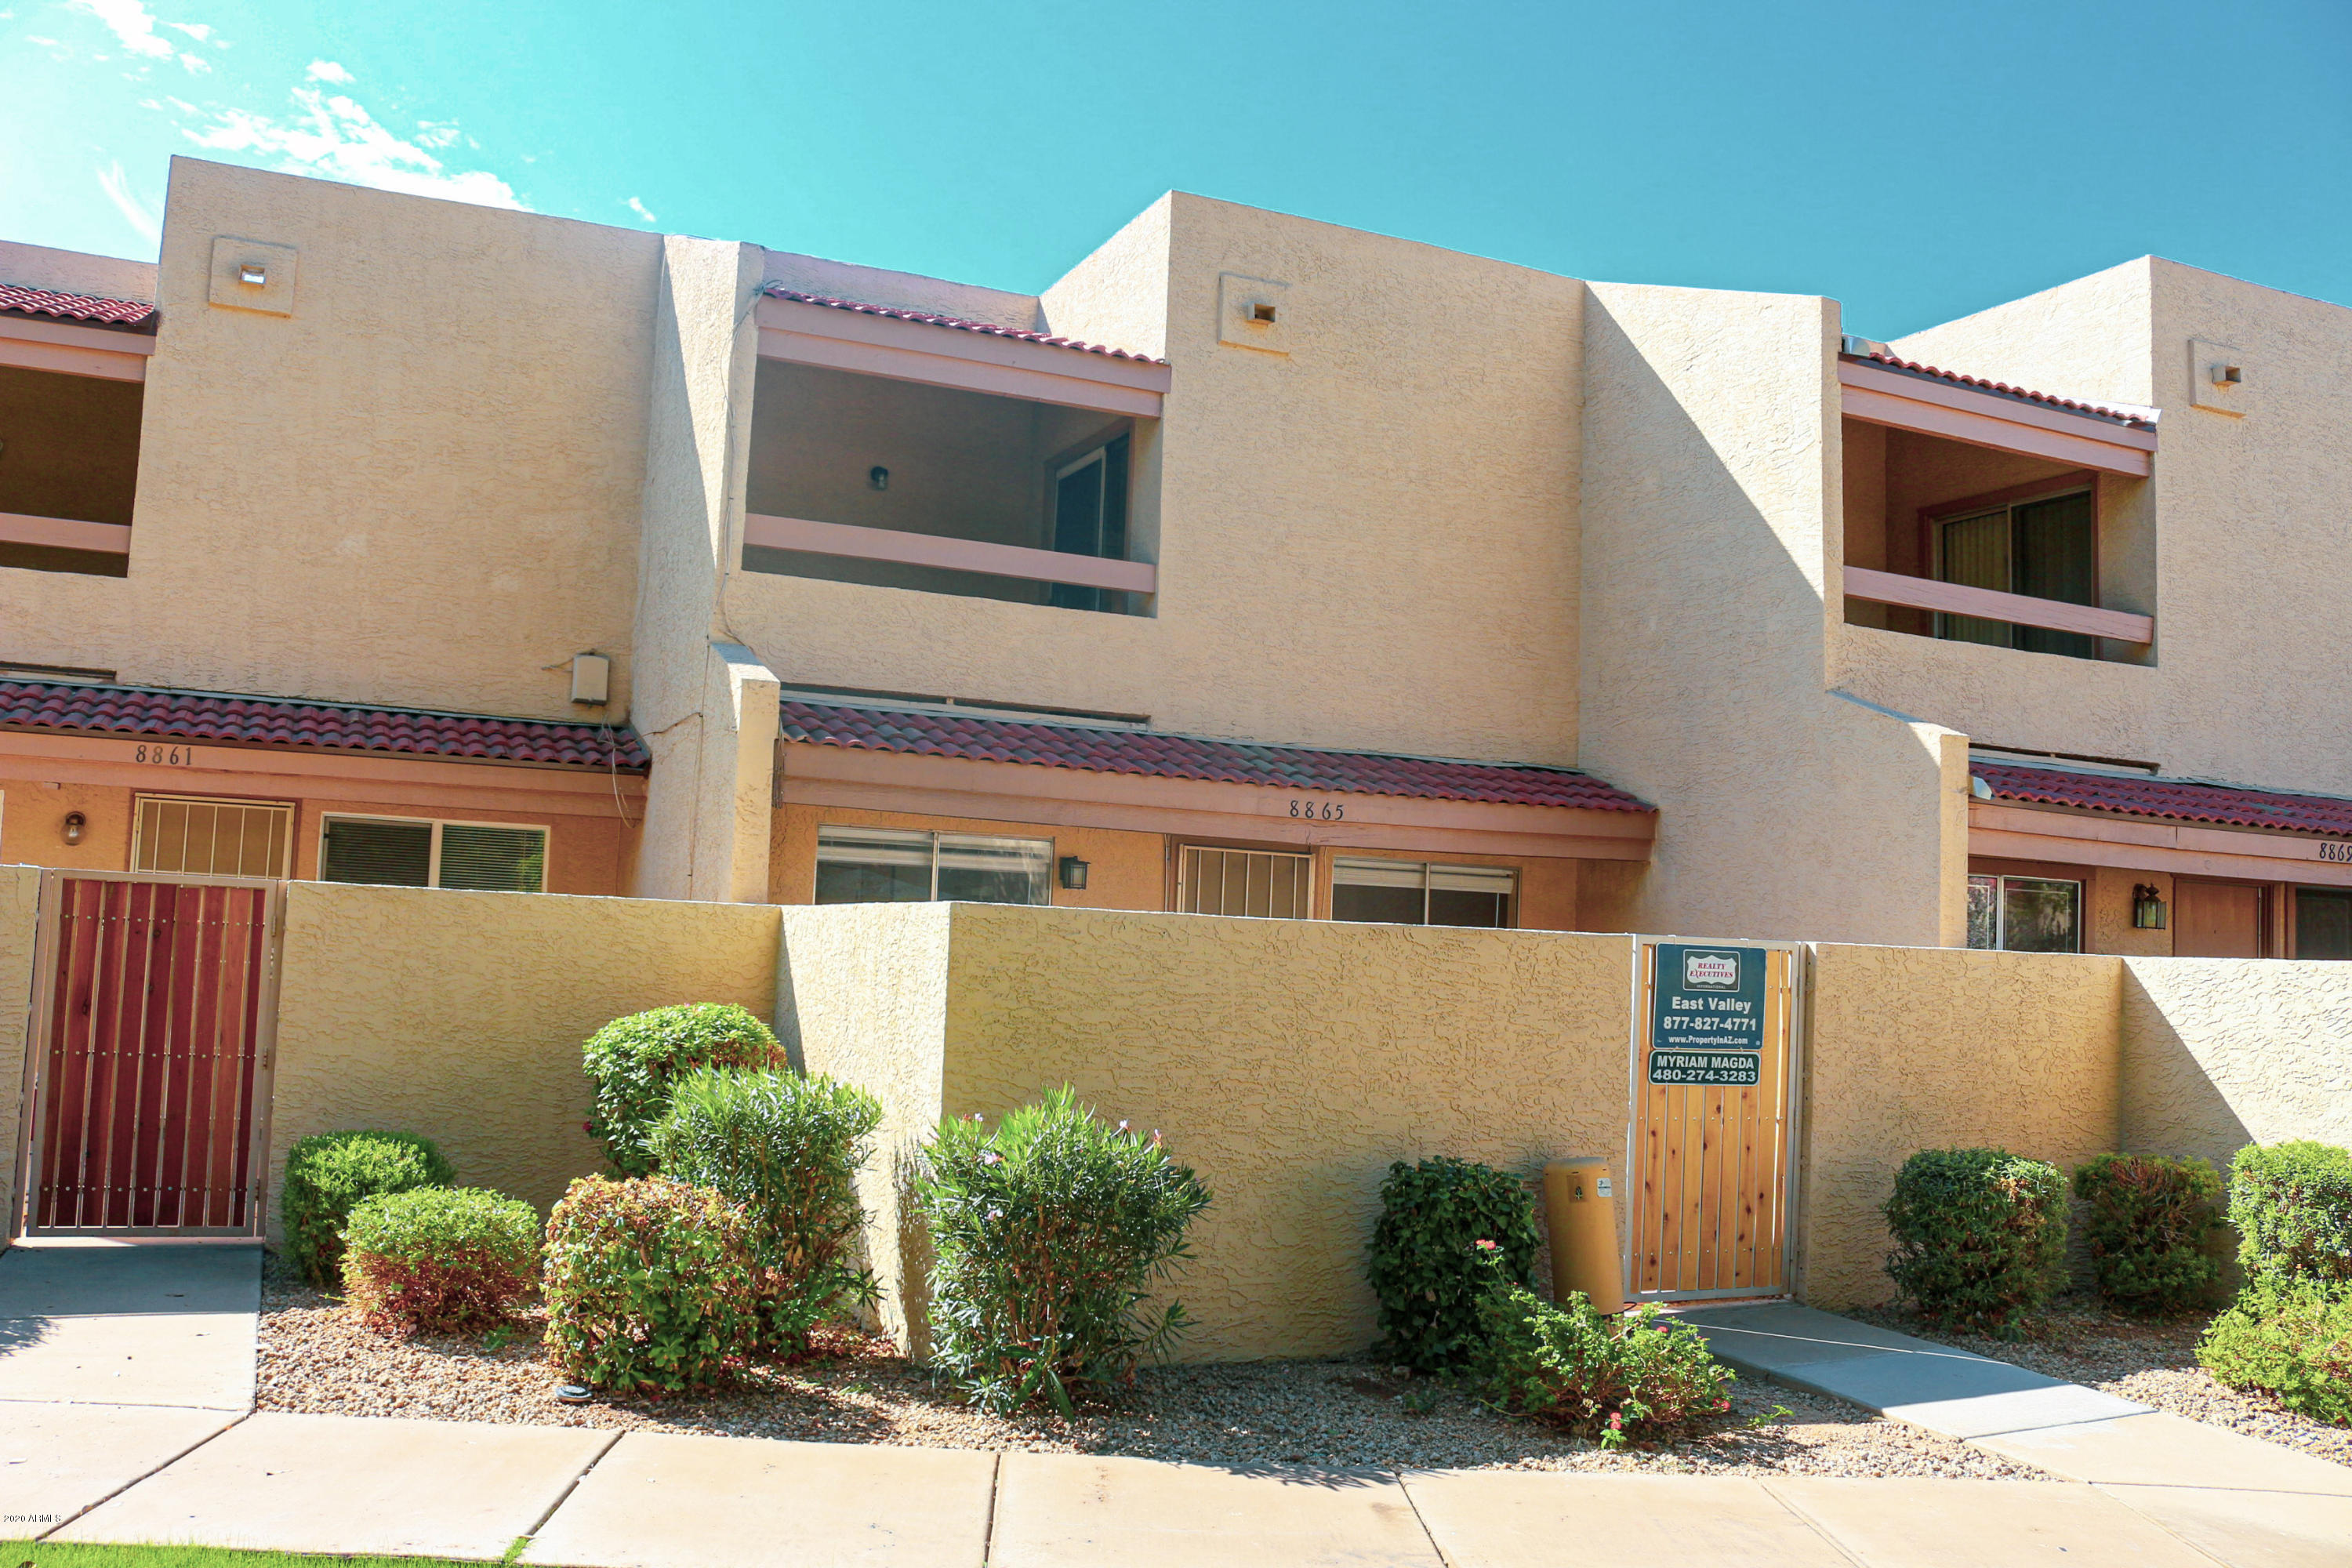 8865 N 47TH Lane, Glendale AZ 85302